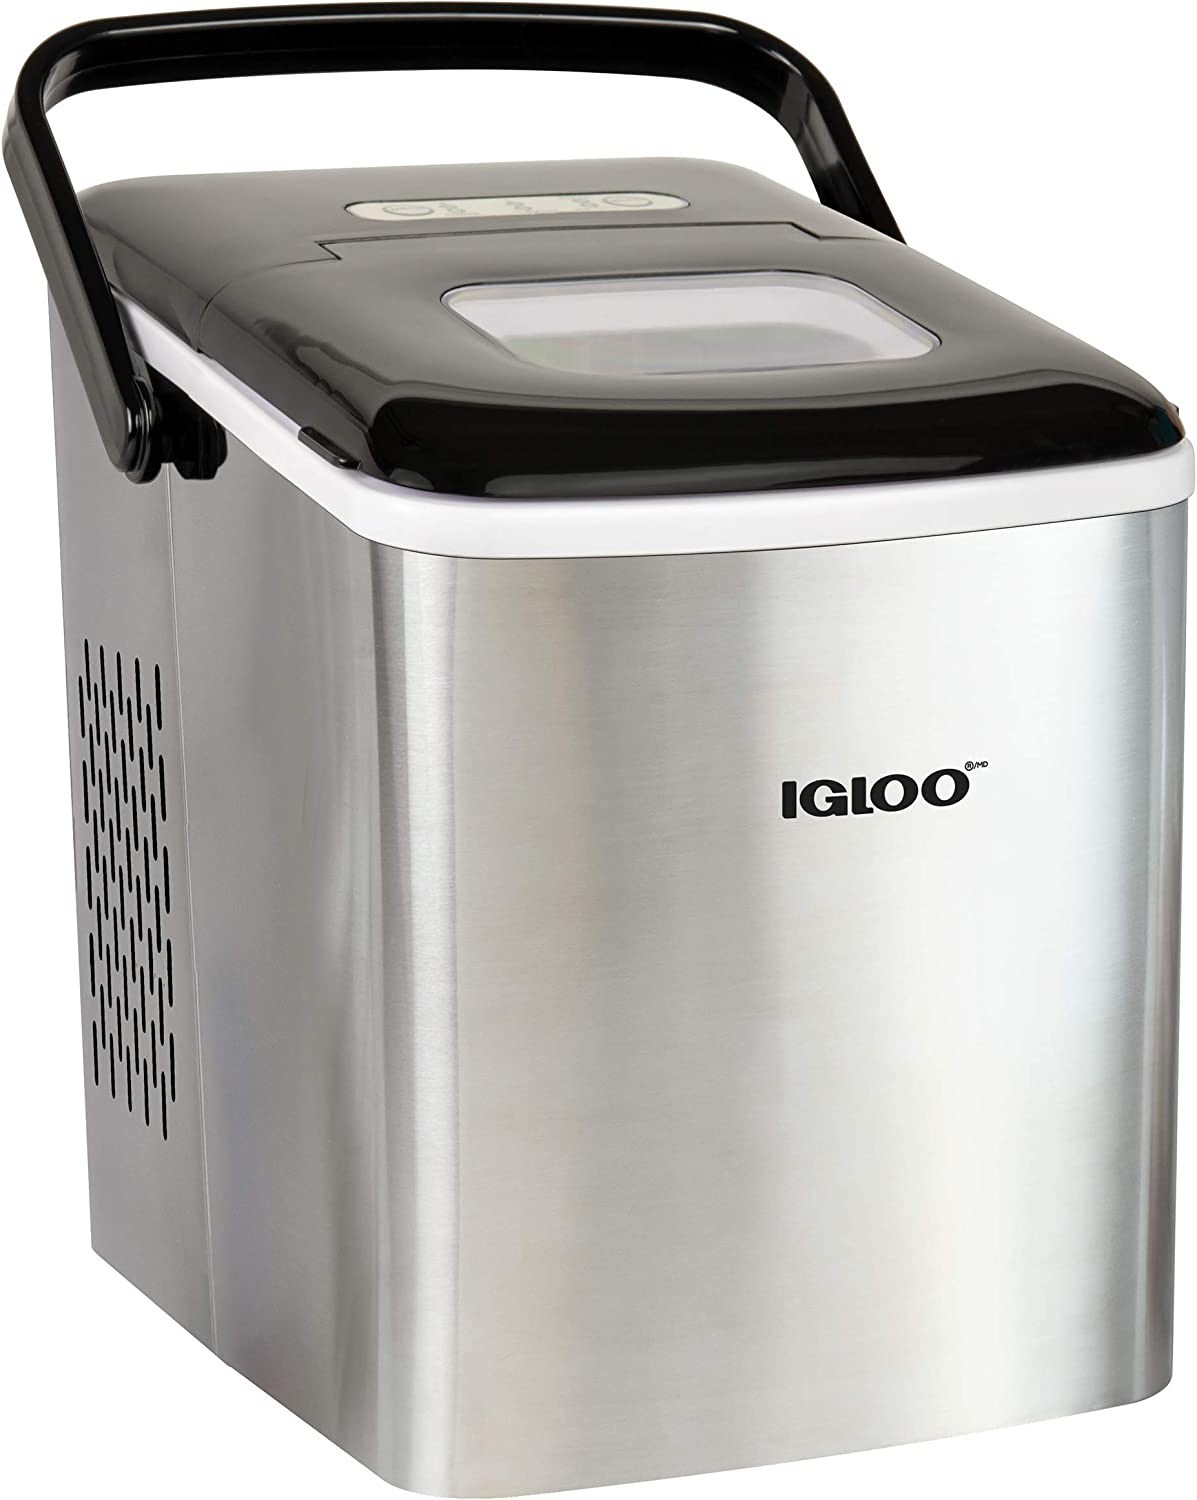 Igloo Self-Cleaning Portable Countertop Ice Maker